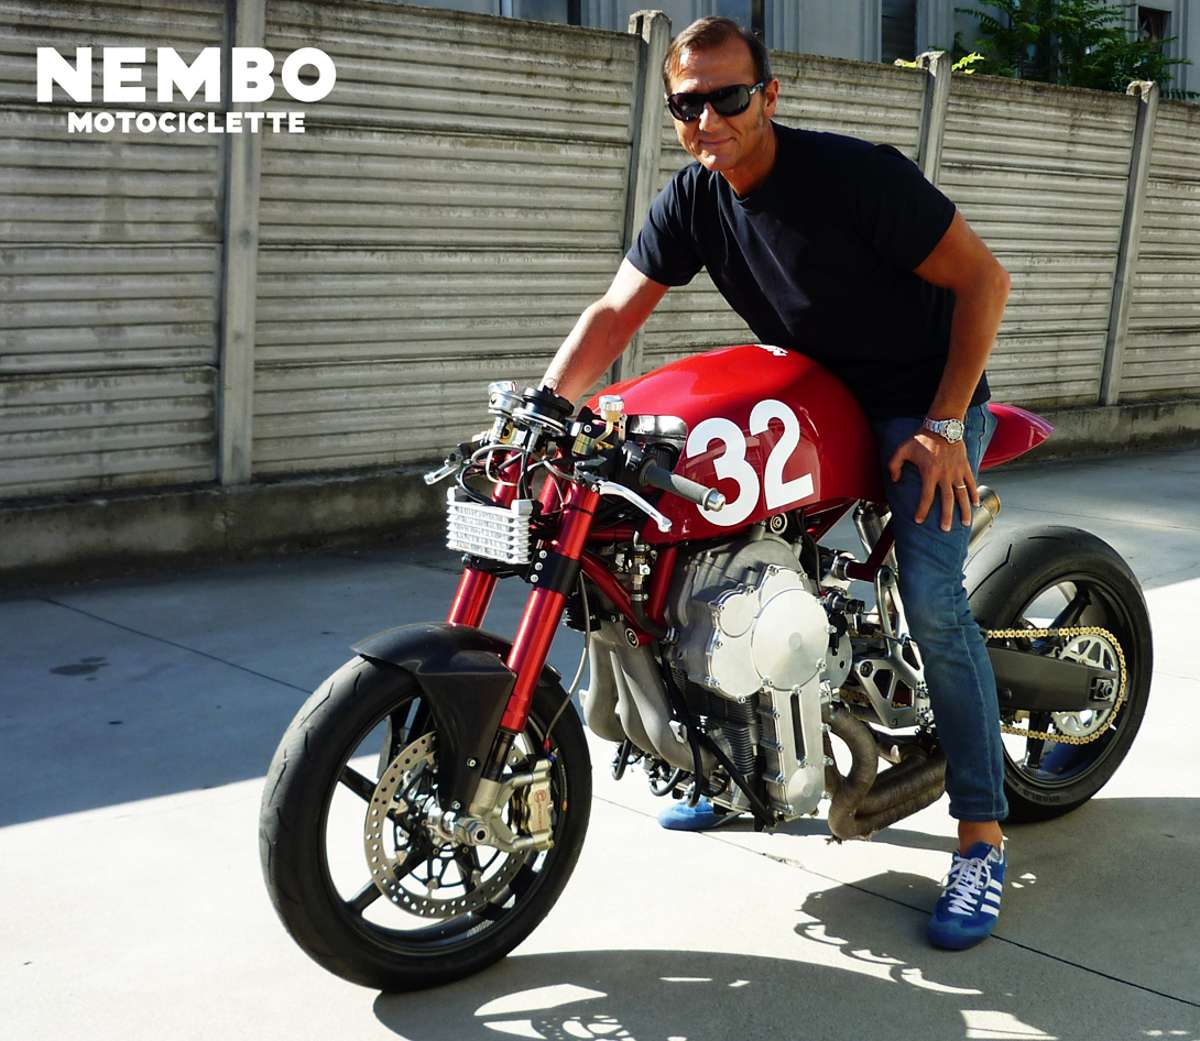 Daniele Sabatini with Nembo Motorcycle